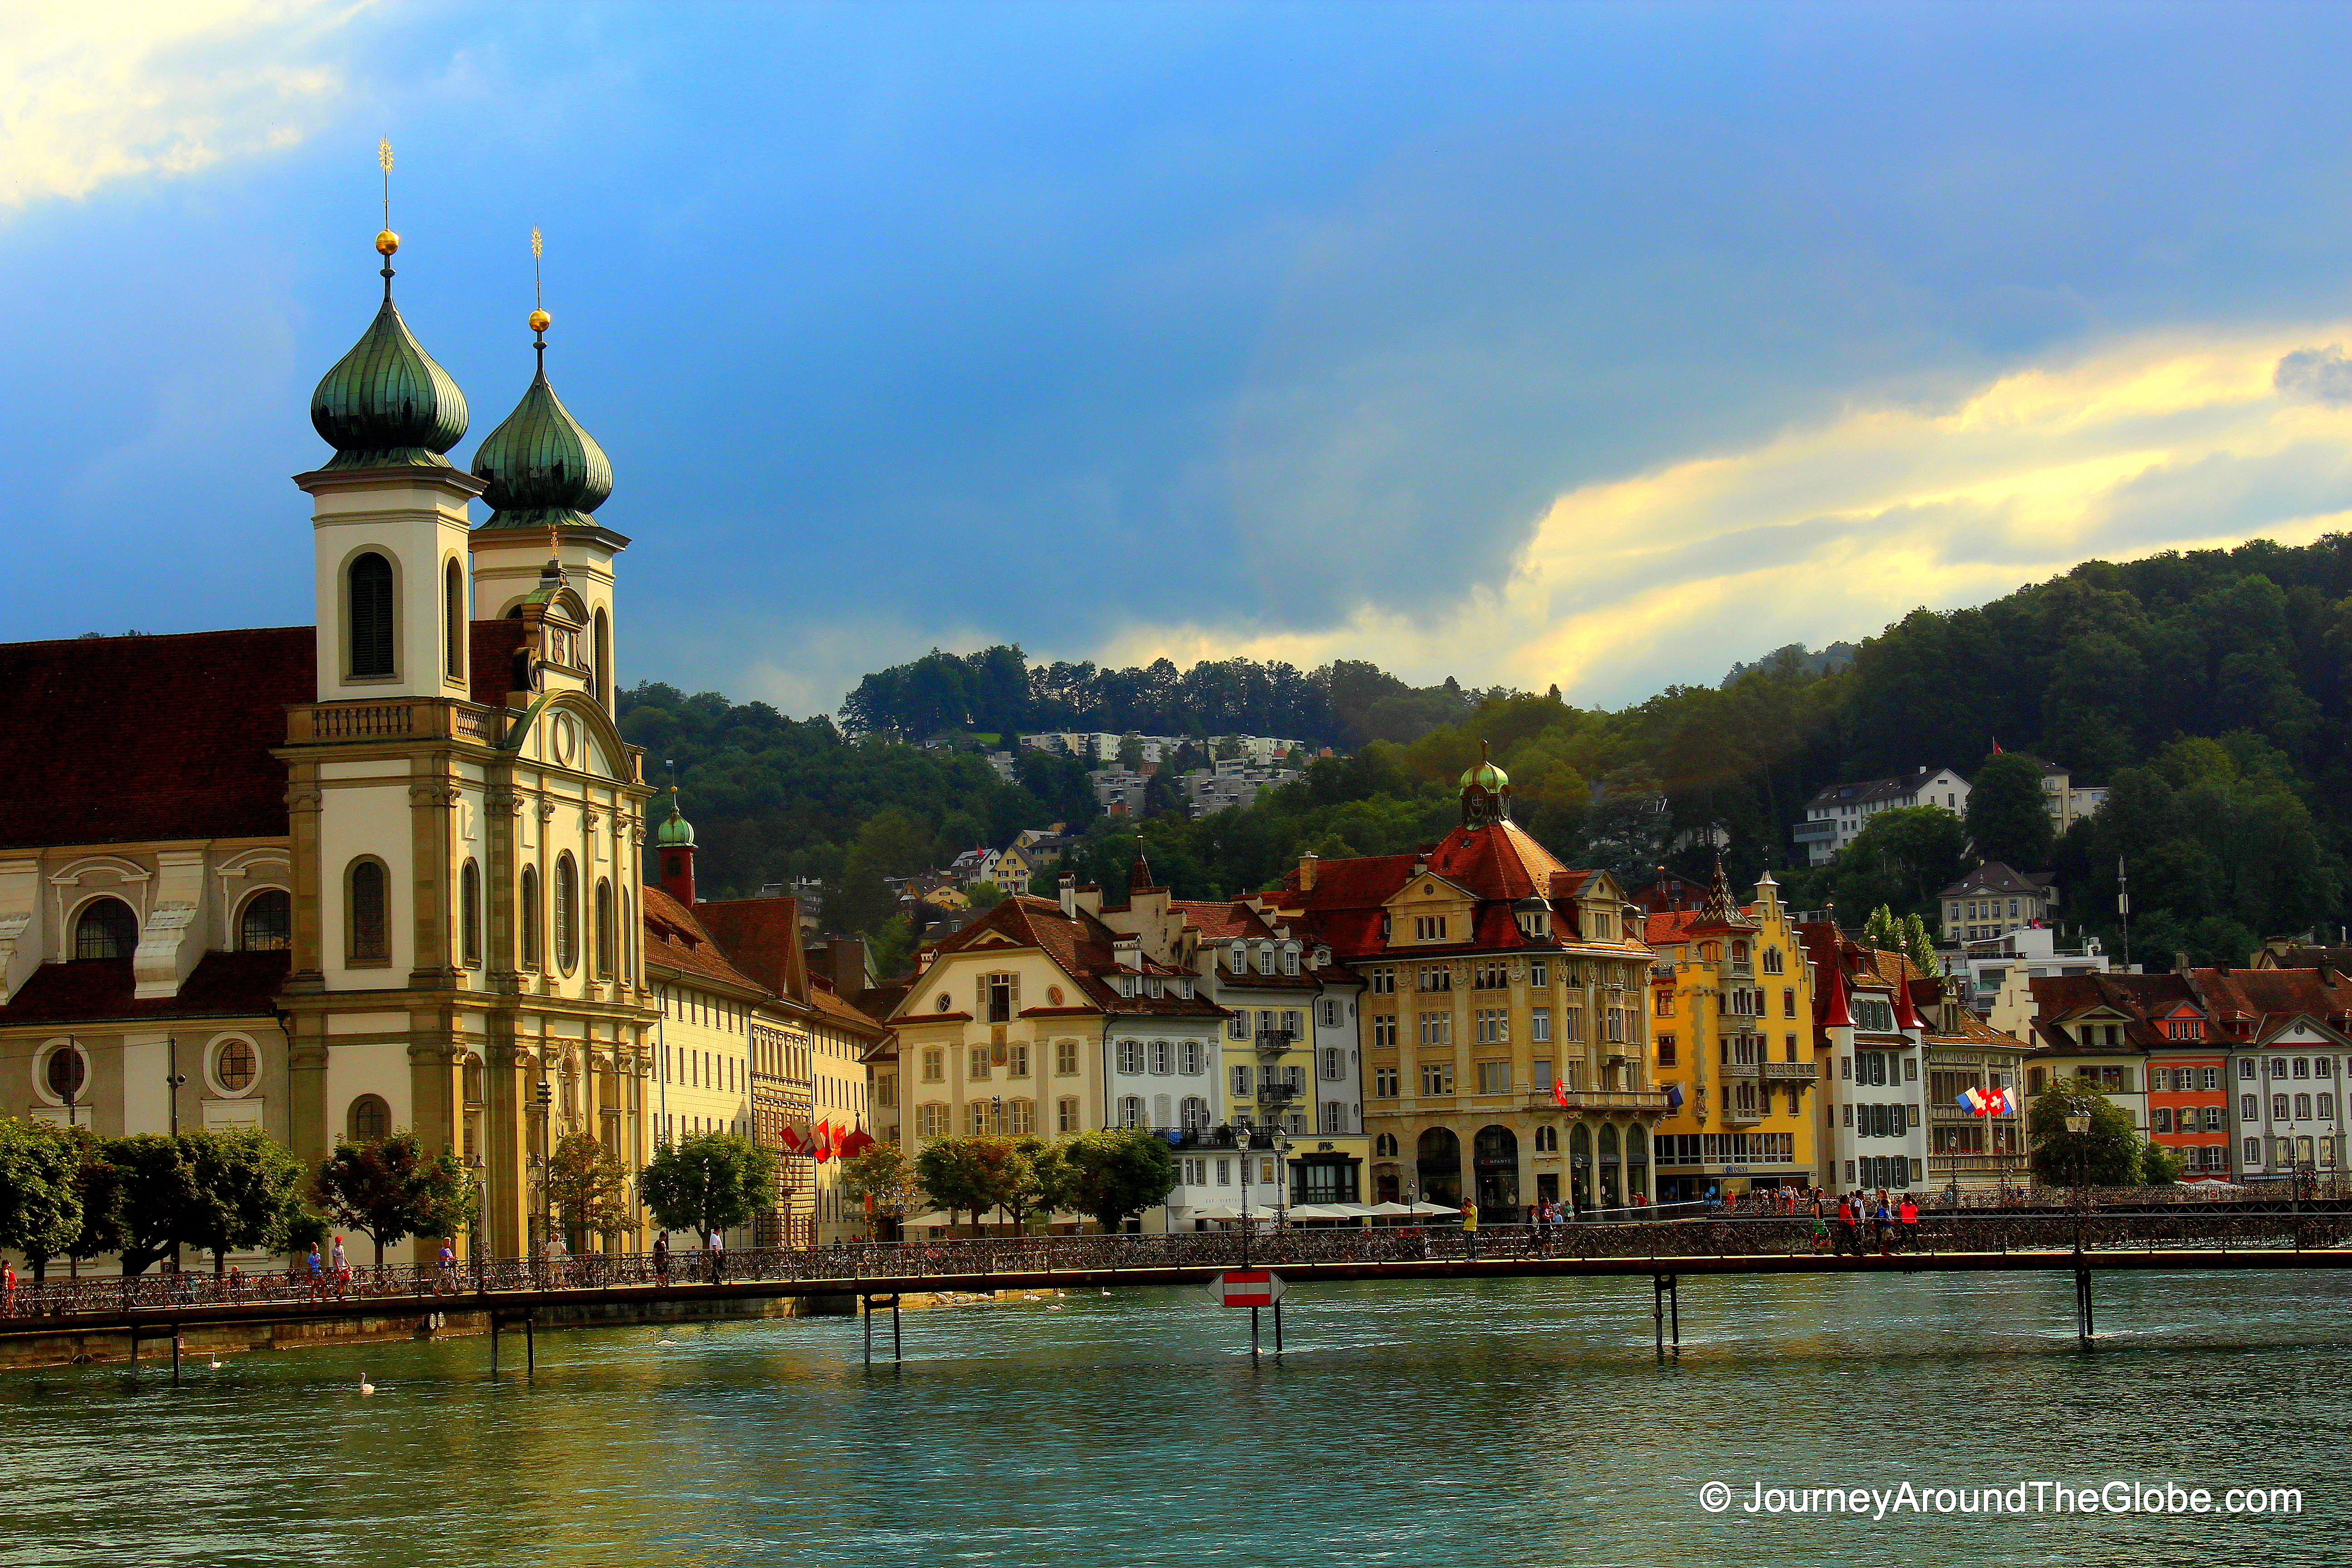 View Of Jesuitenkirche And Surroundings From The Chapel Bridge, Lucerne,  Switzerland